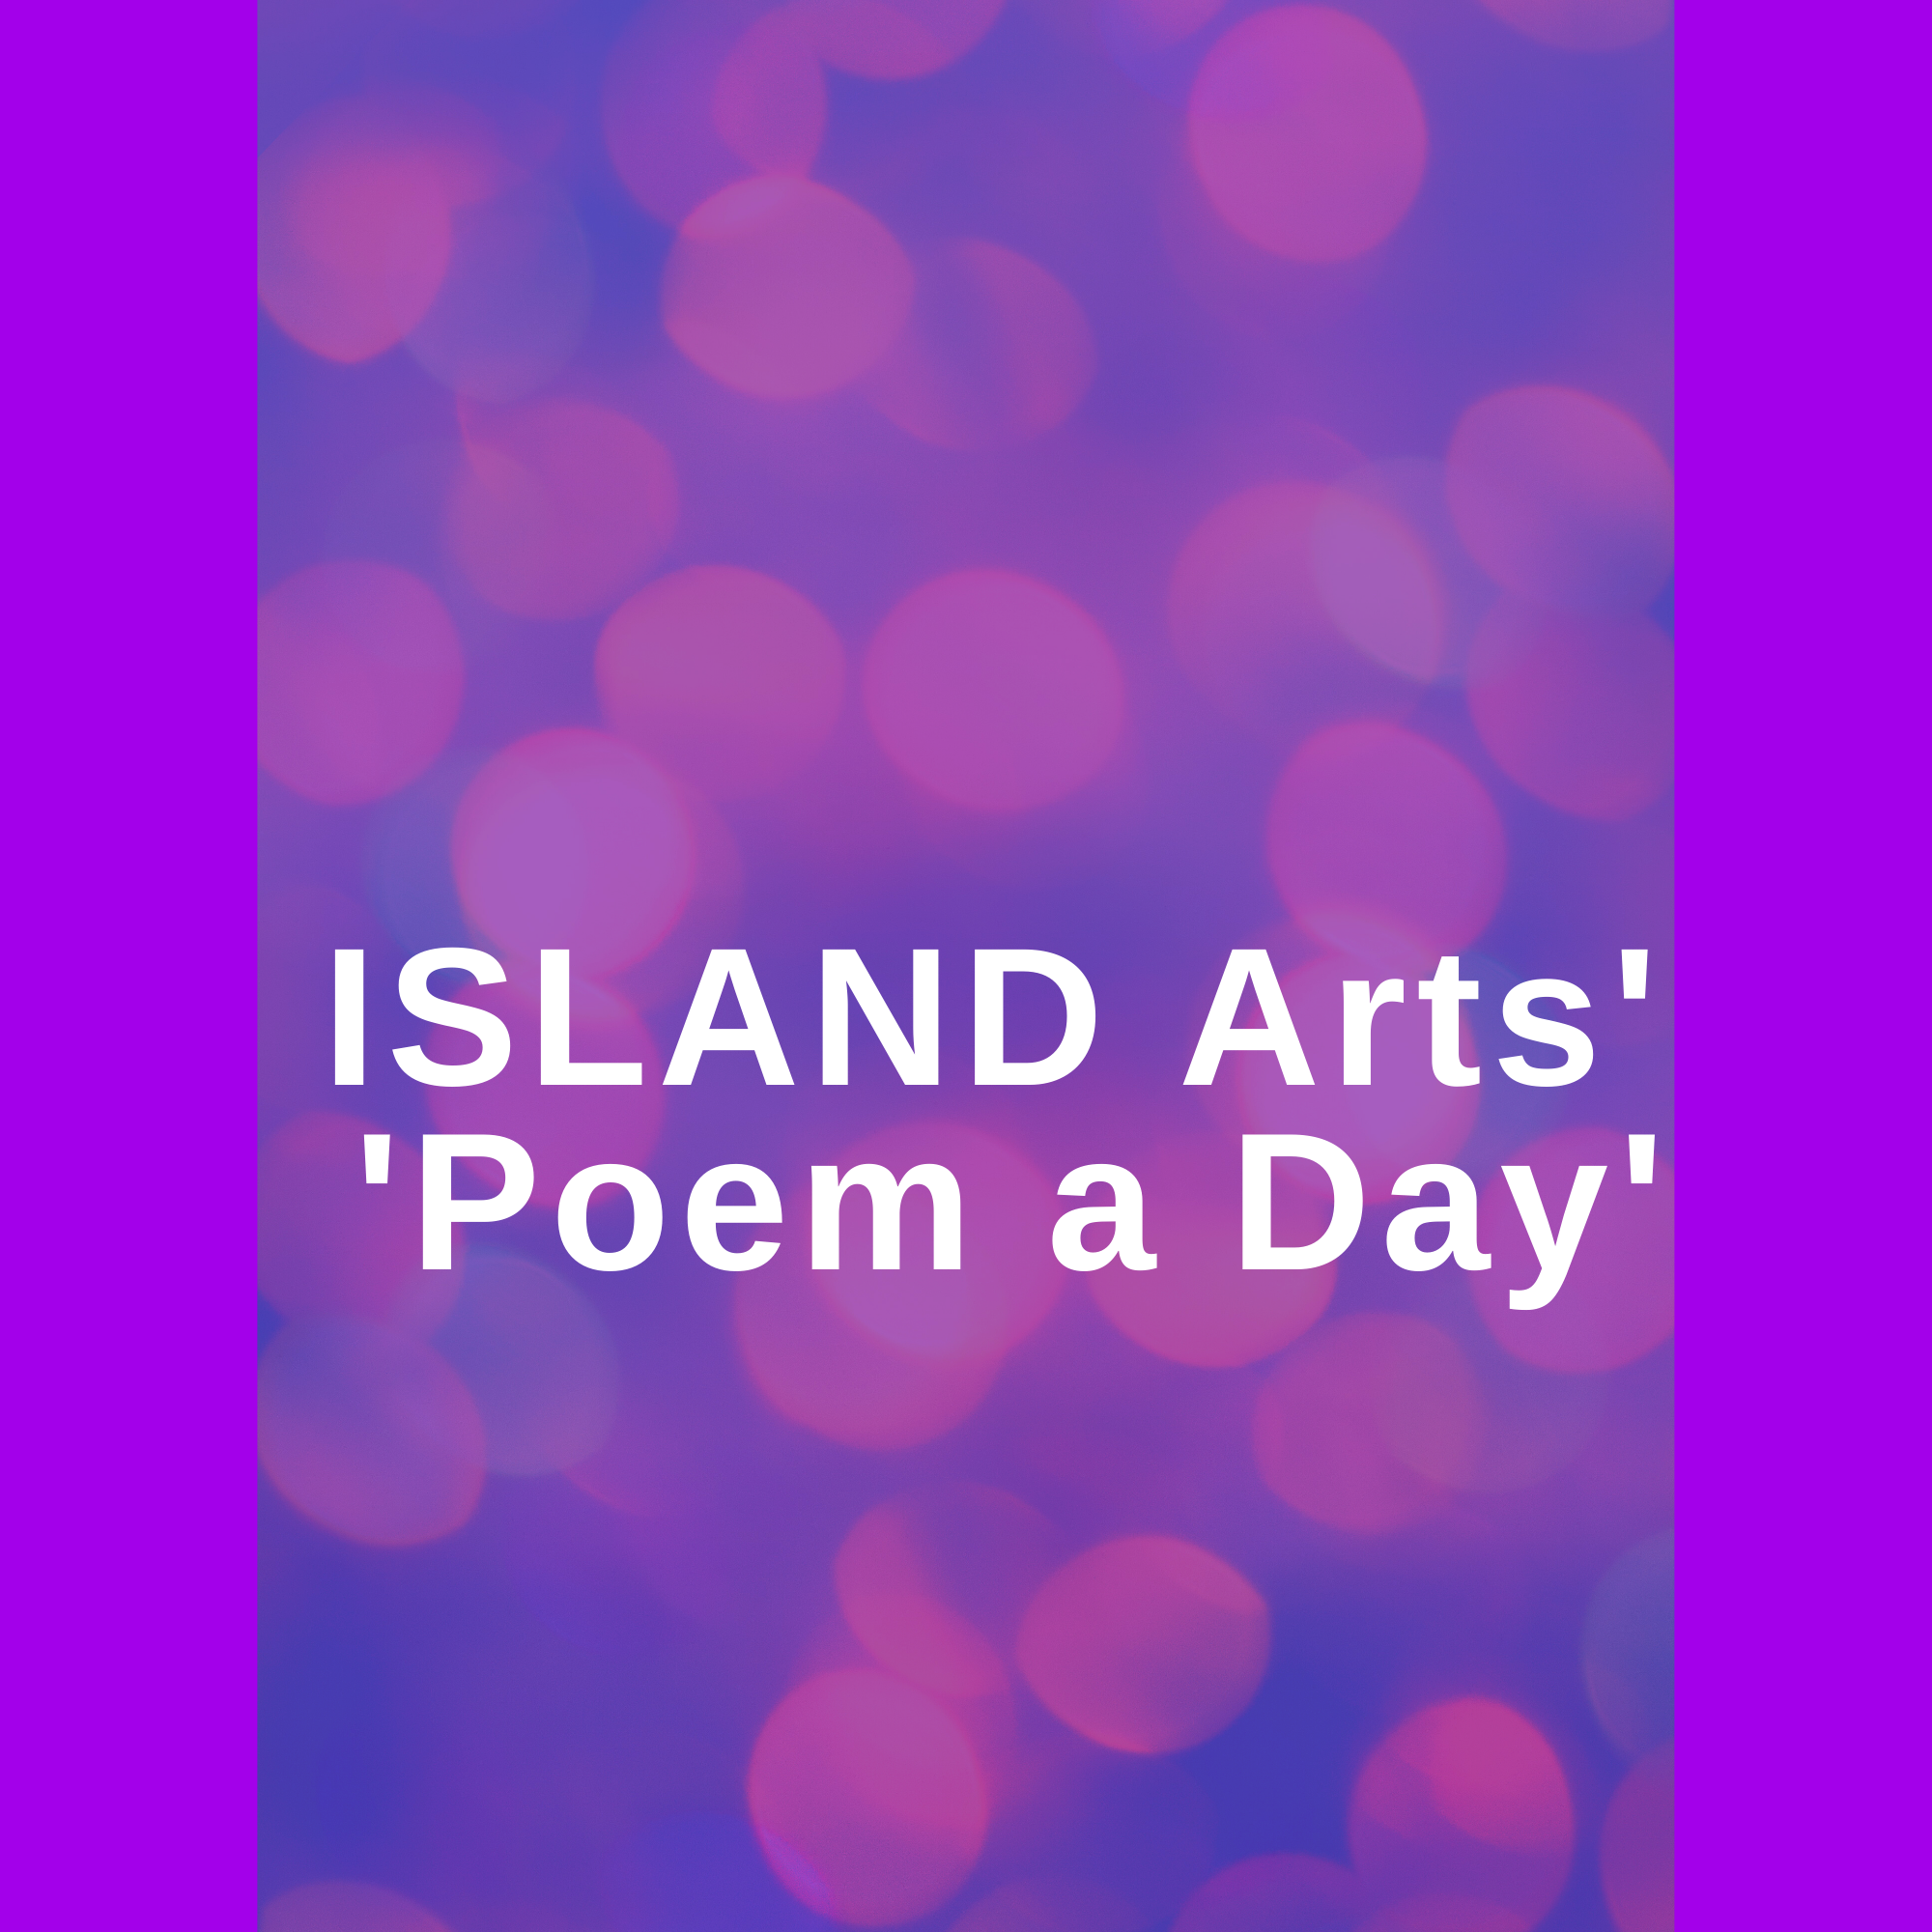 ISLAND Arts' 'Poem a Day' Seachtain na Gaeilge / Irish Language Week Festival